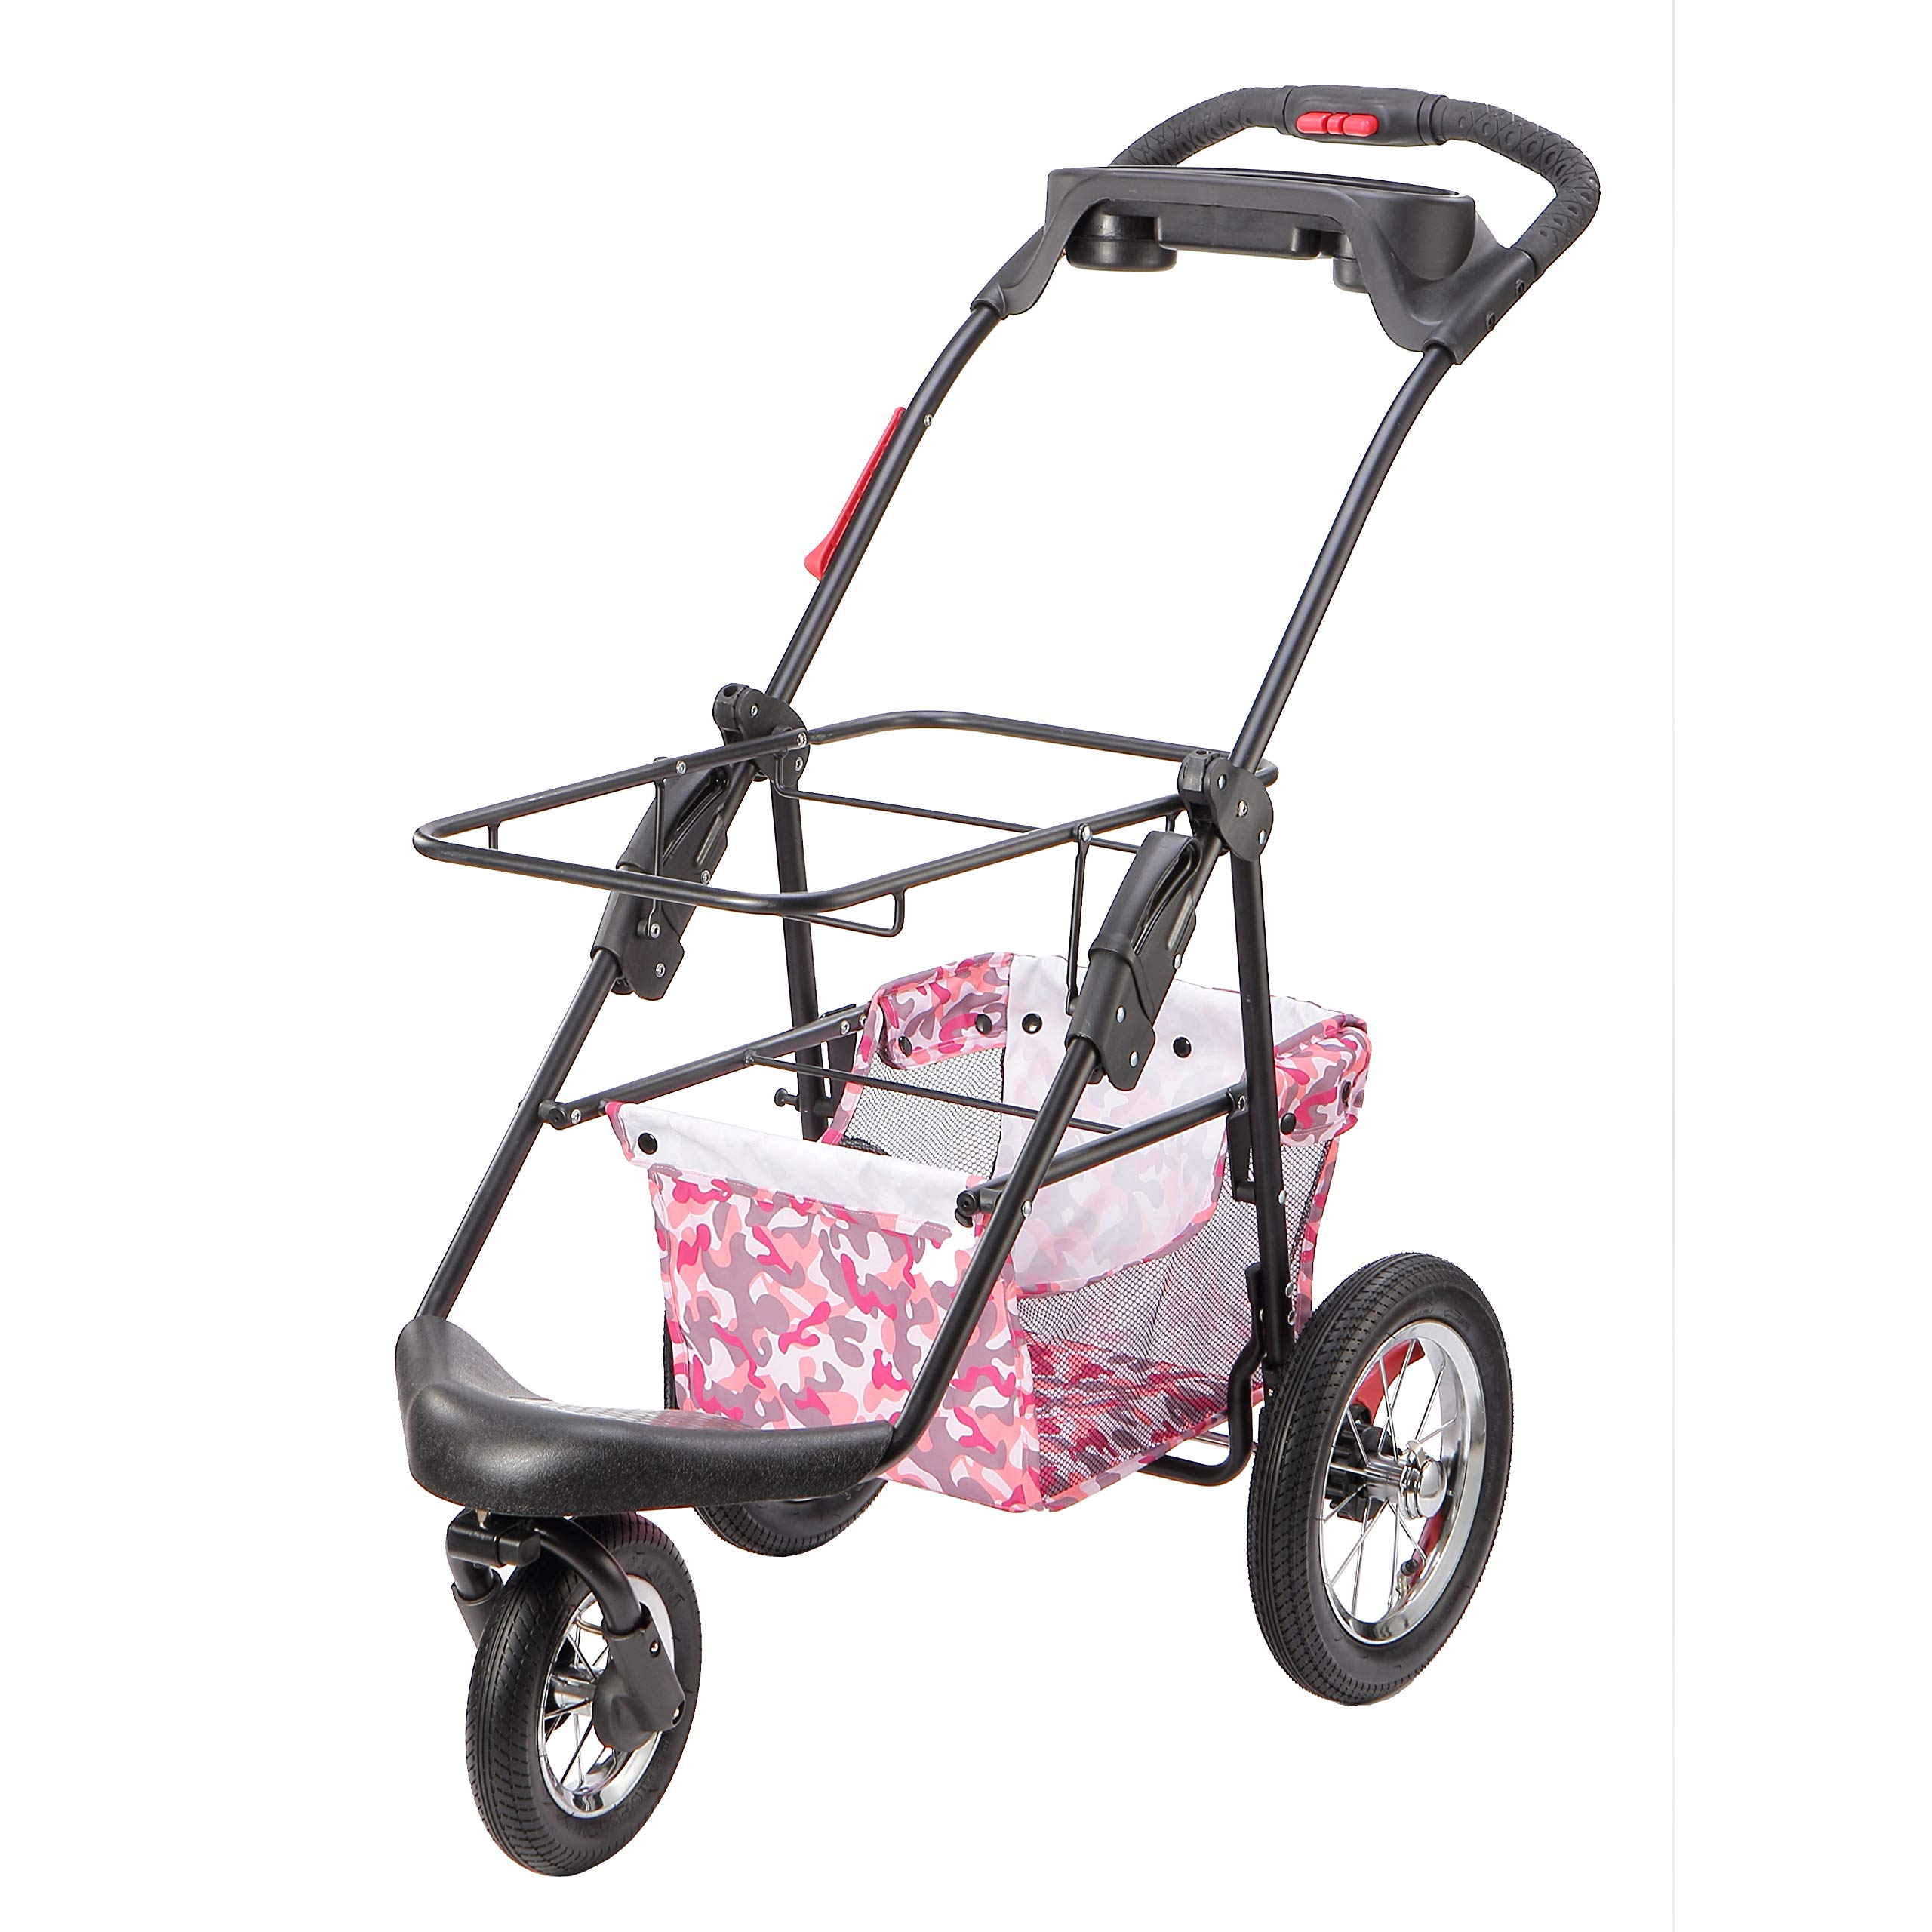 Petique Pet Stroller, Pink Camo, One Size by Petique